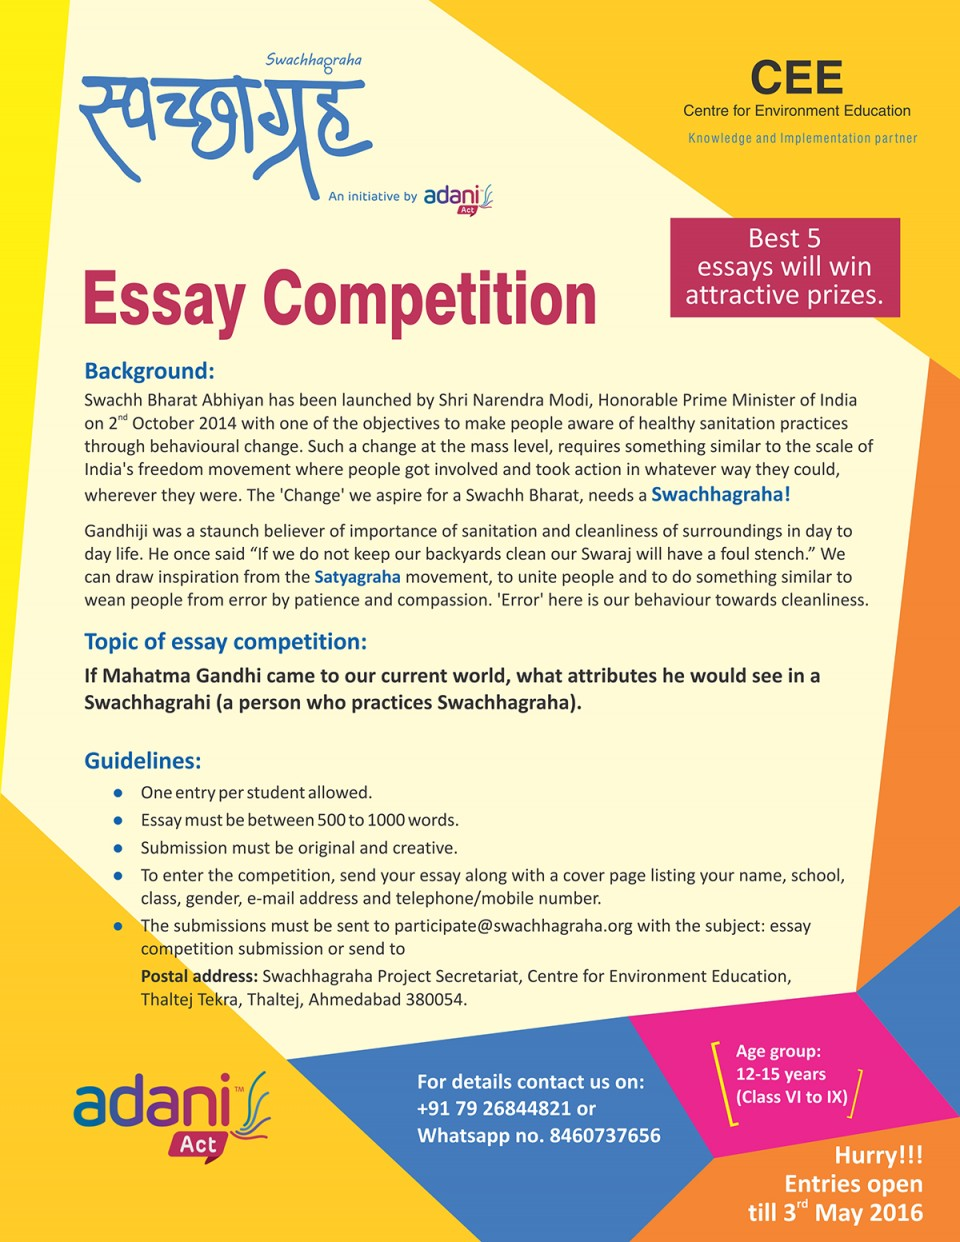 011 20180129171946essay20competition Essay About Cleanliness In School Phenomenal On Premises Toilets Writing 960